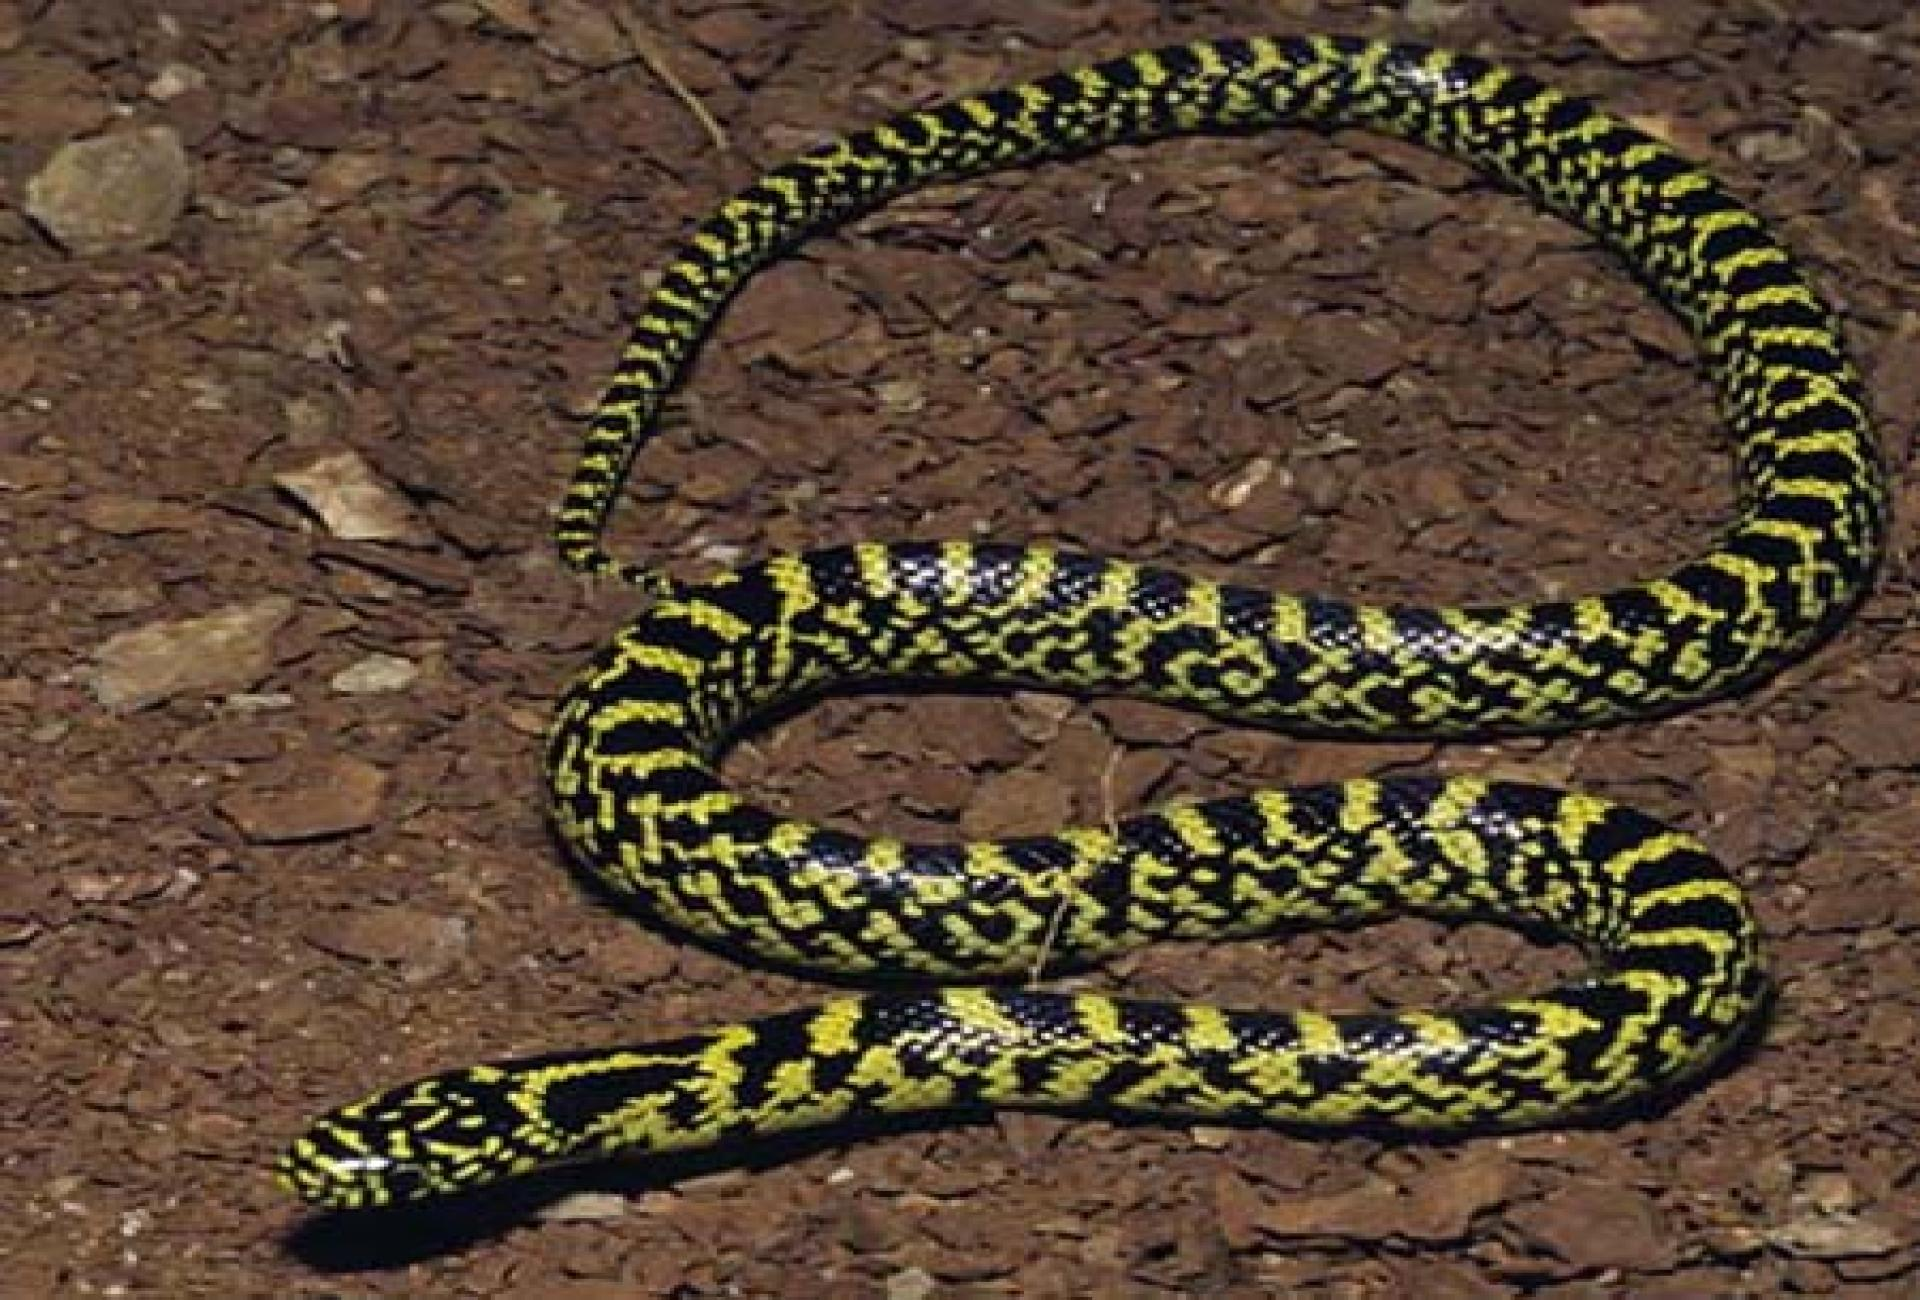 speckled king snake young